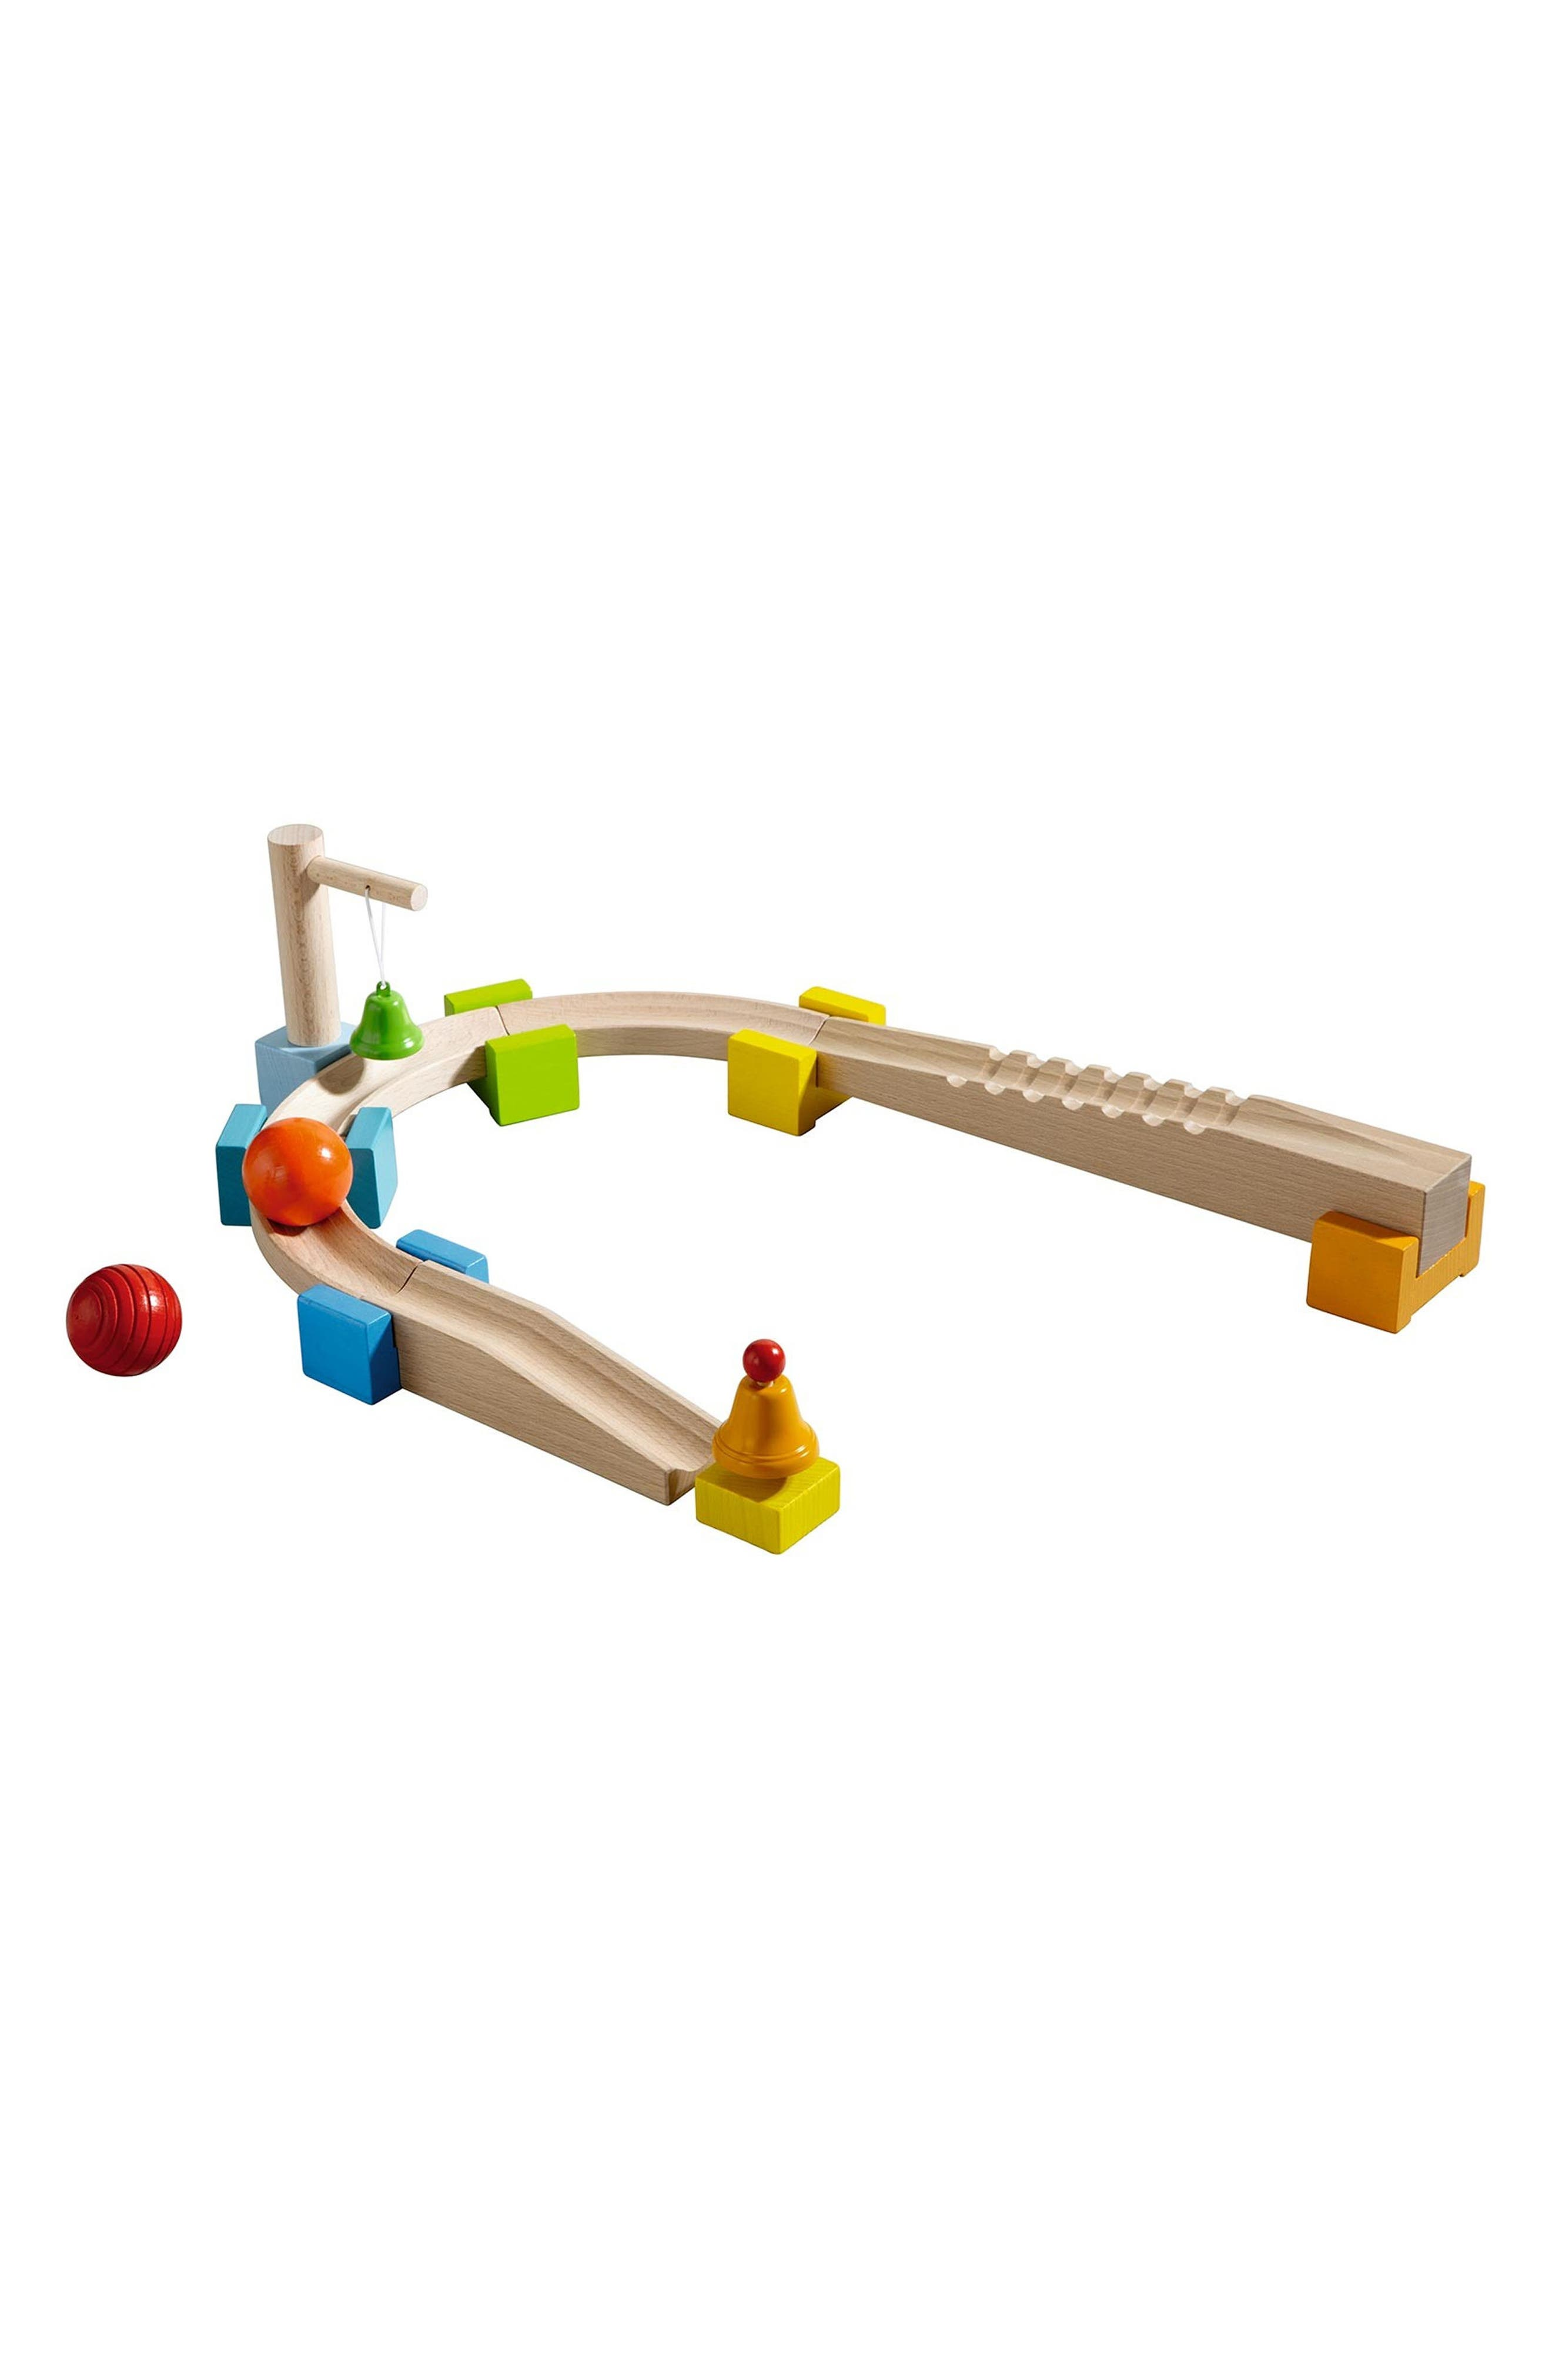 My First Ball Track - 14-Piece Basic Pack Chatter Track Play Set,                             Main thumbnail 1, color,                             200